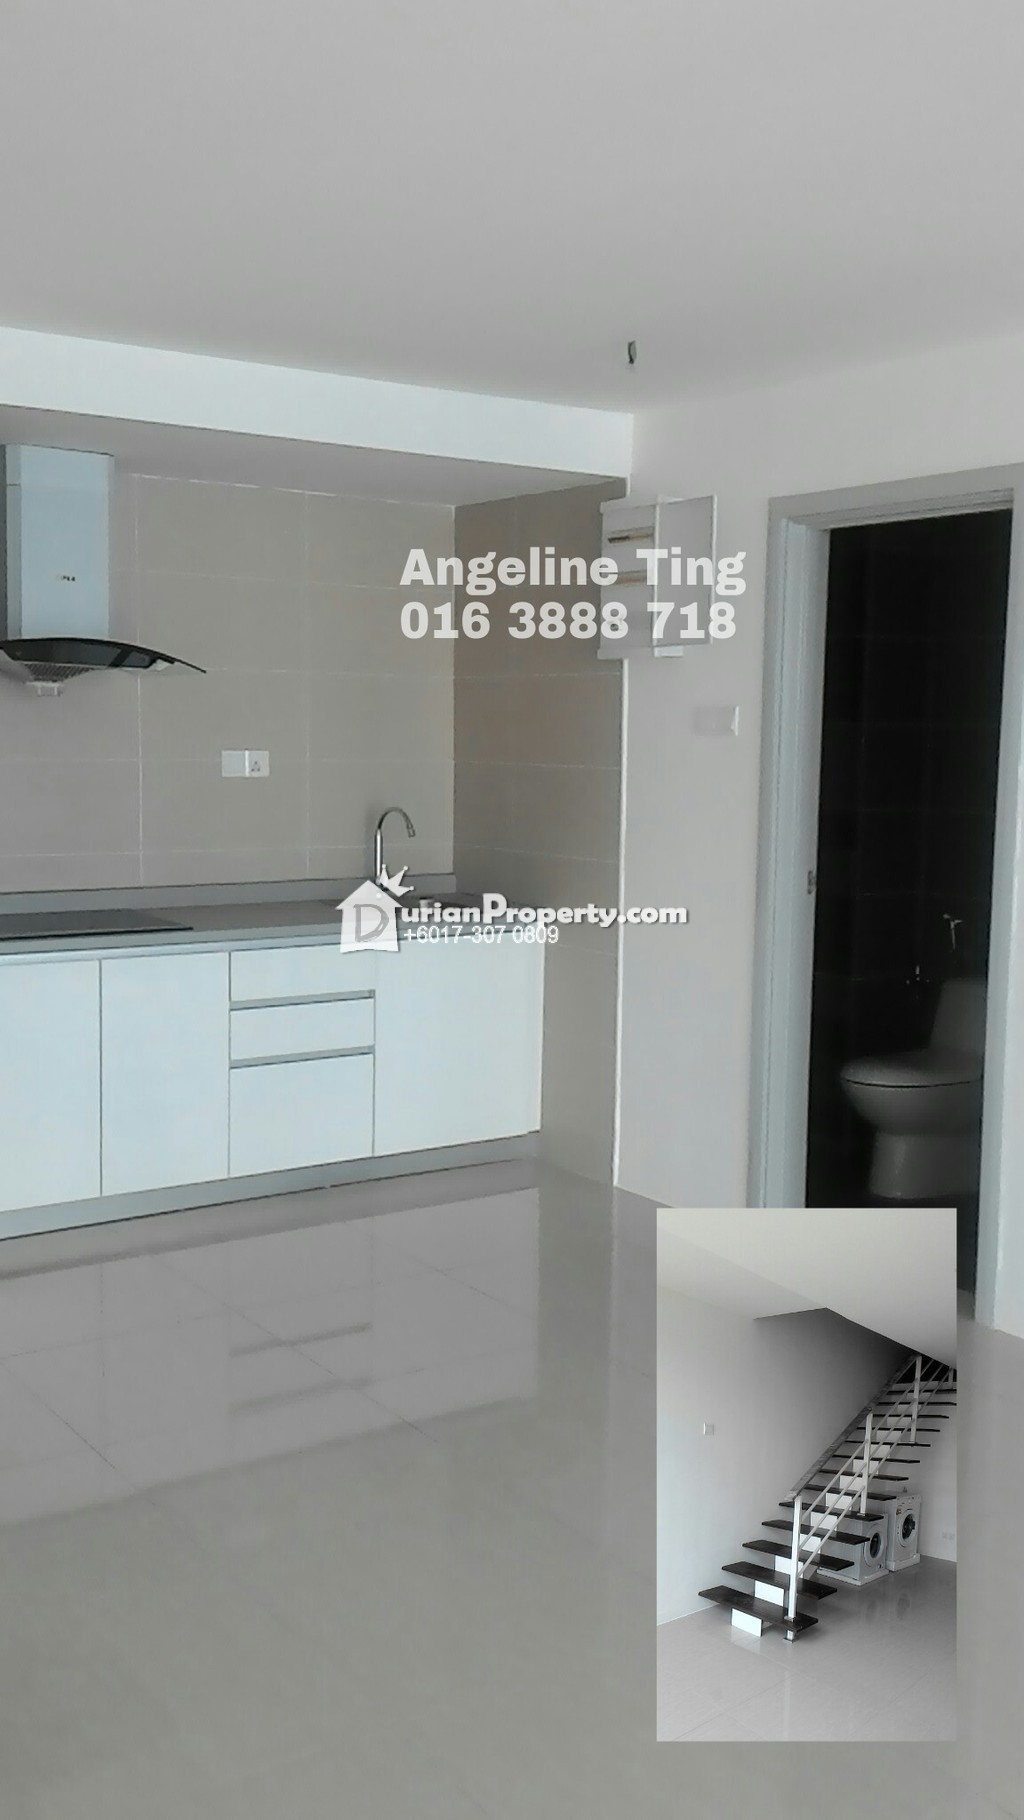 Arte Rent House Condo For Rent At Arte Shah Alam For Rm 1 900 By Florence Chin